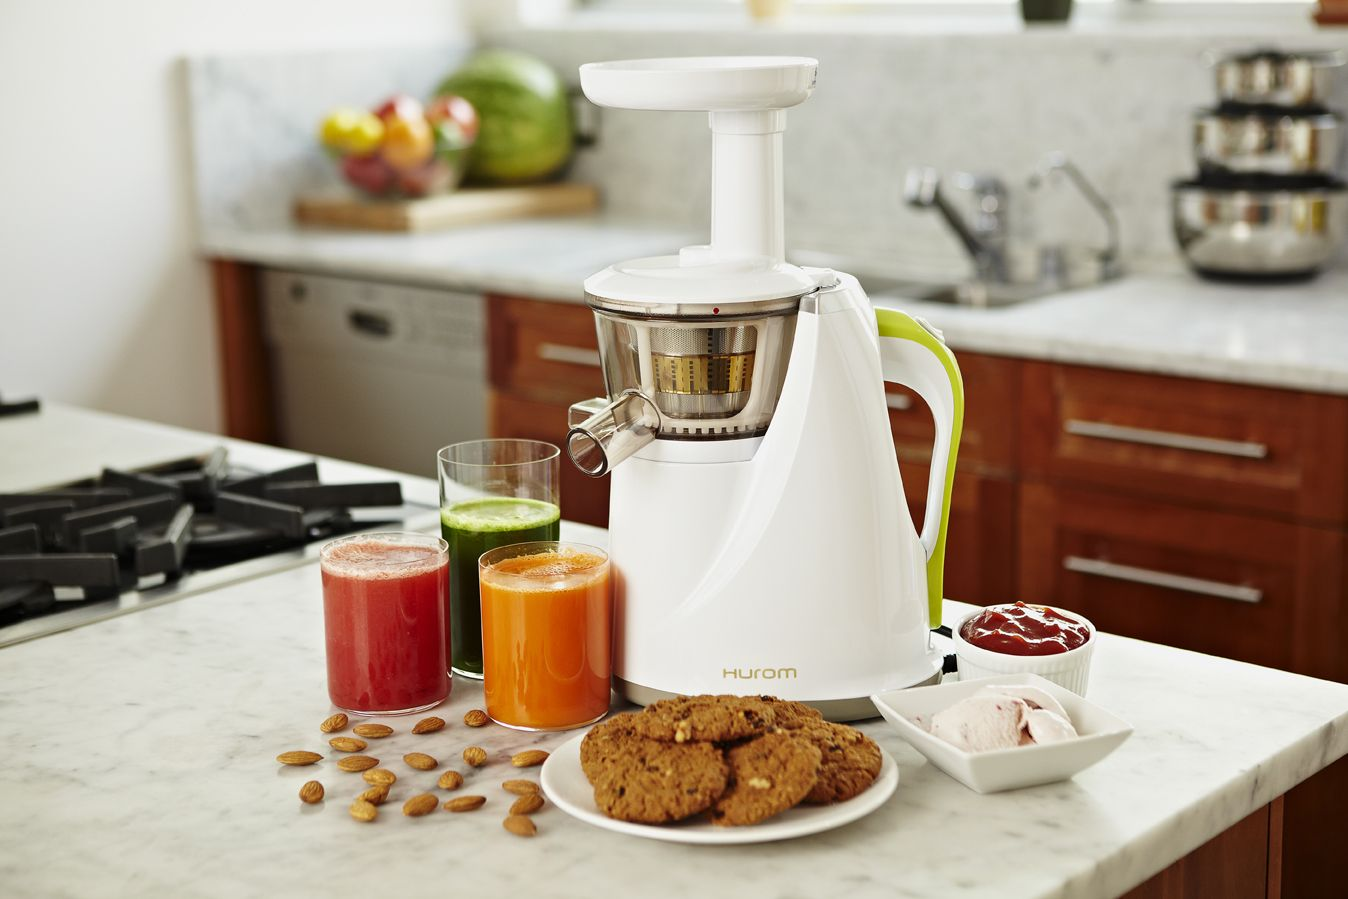 Maximize the nutritional and taste benefits of juiced